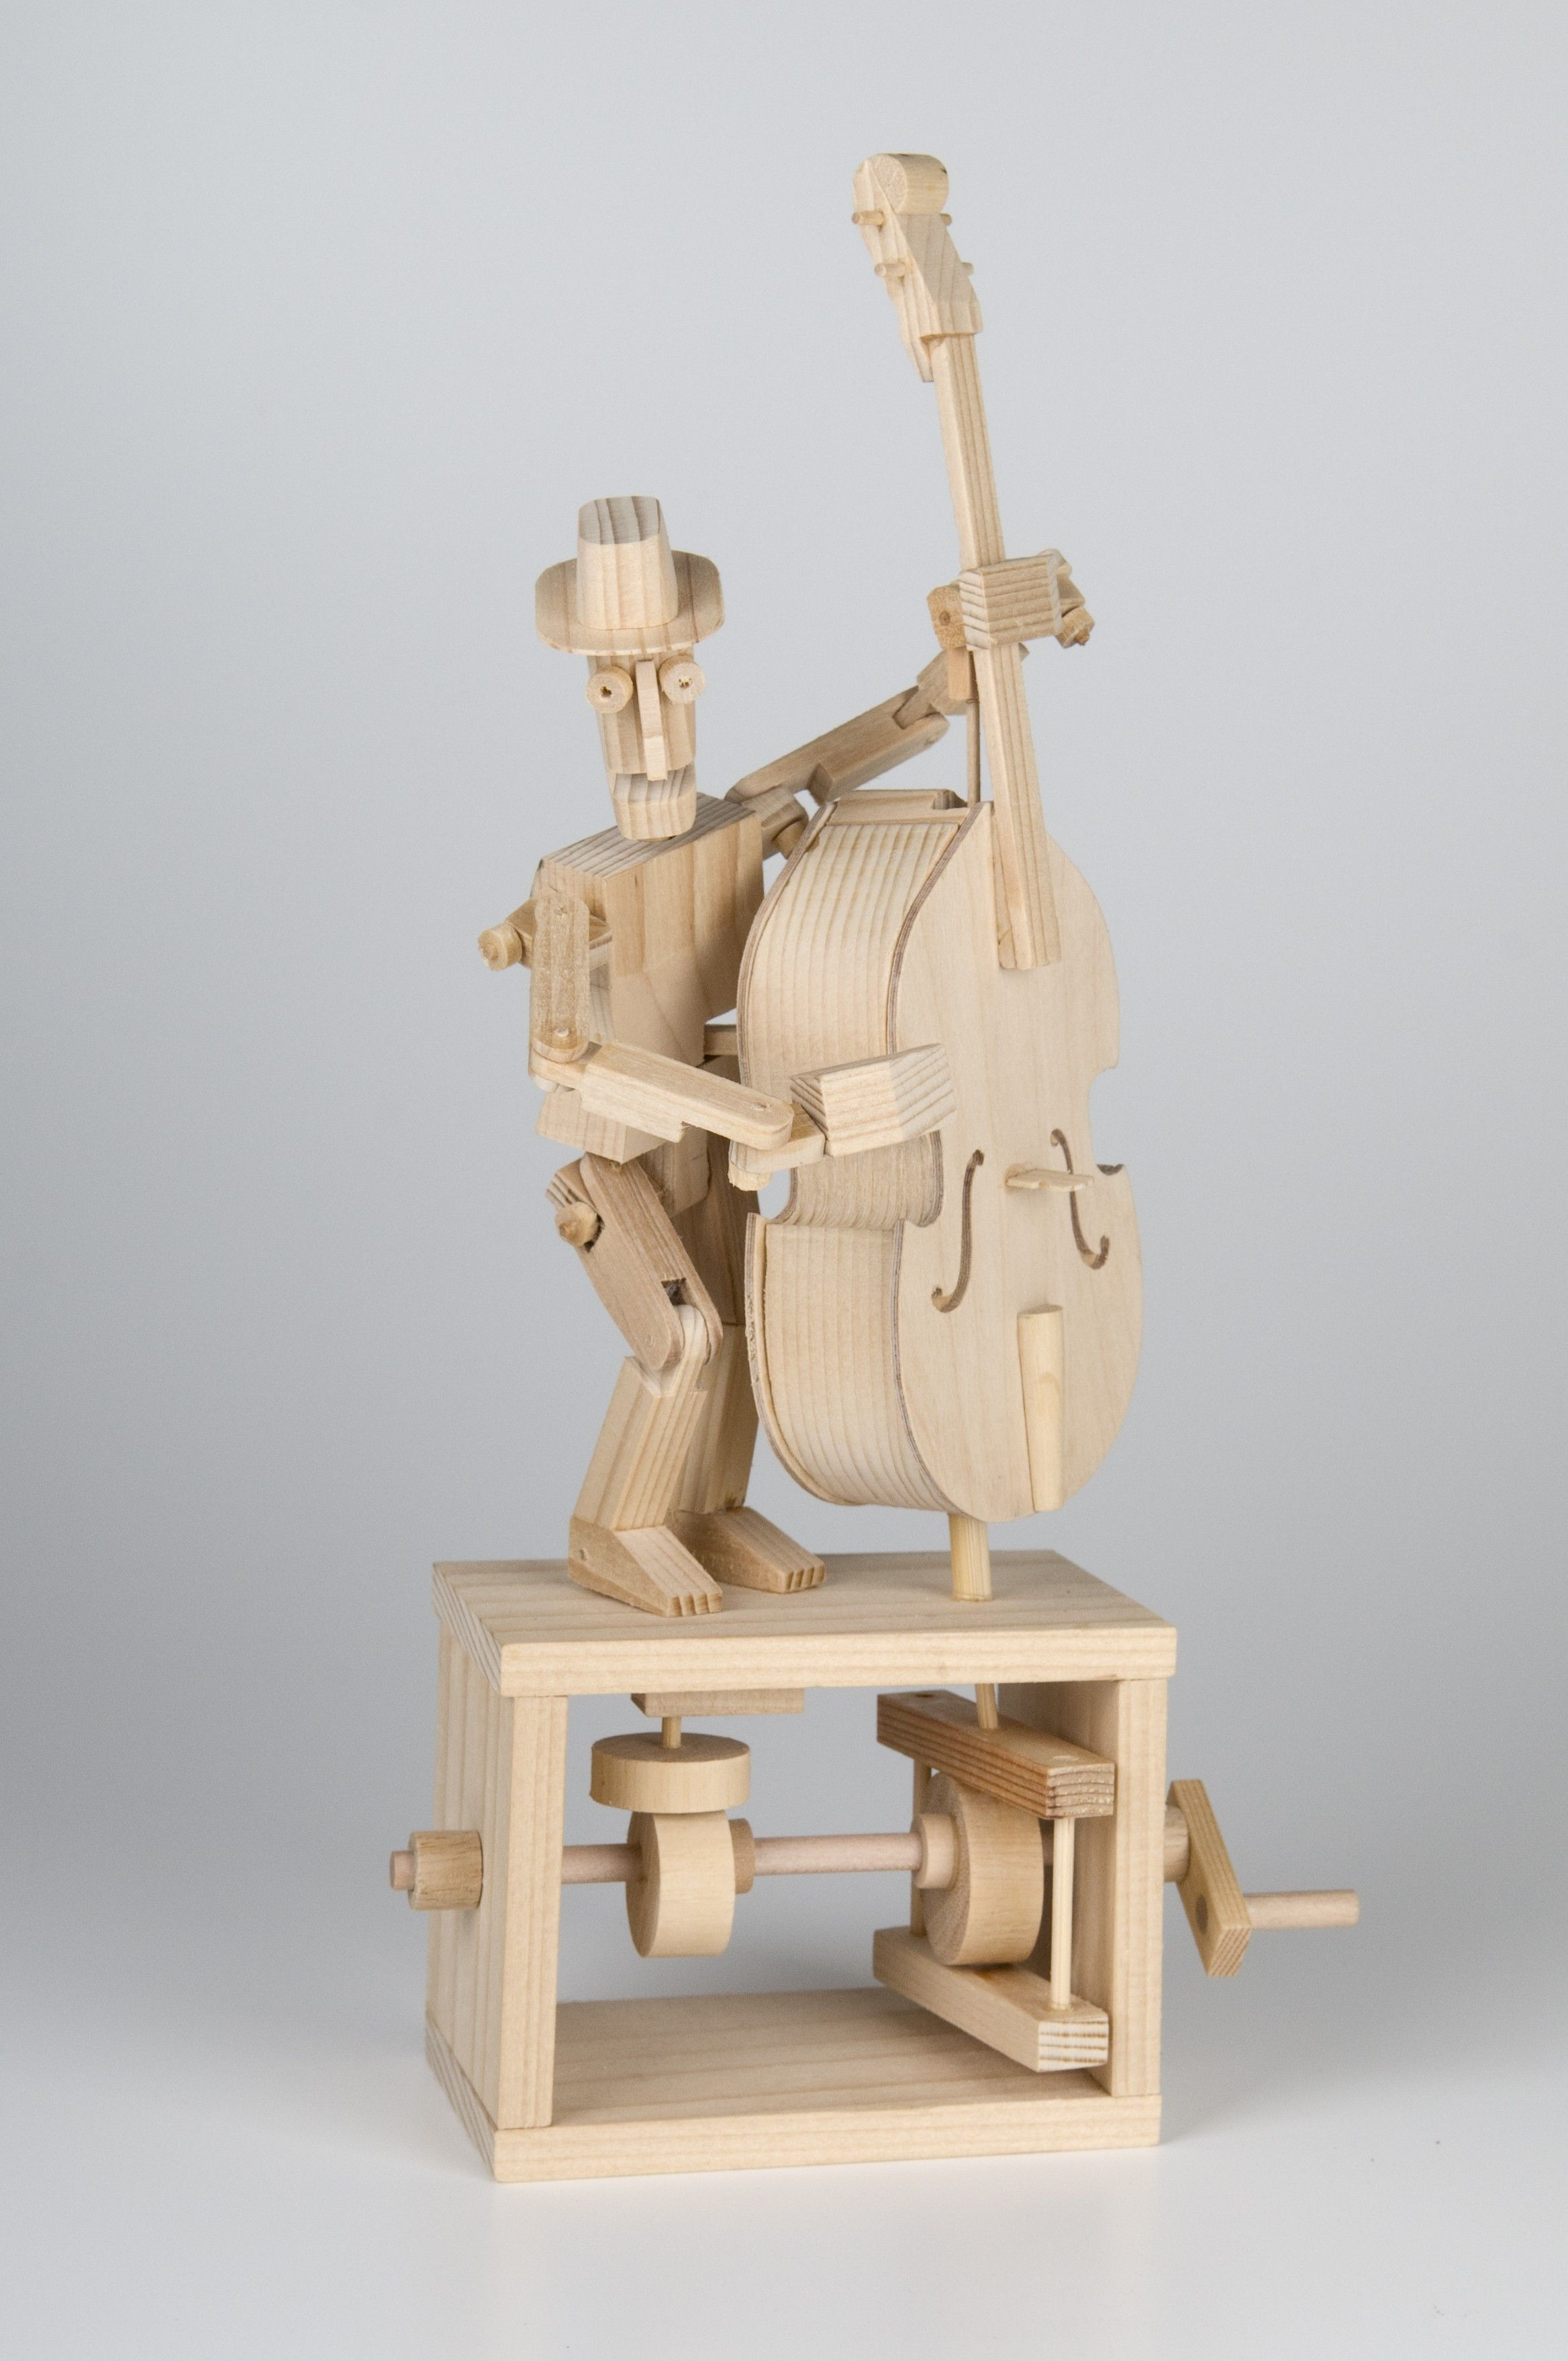 Timberkits Double Bass Kit Wooden Moving Model Self Assembly Construction Gift